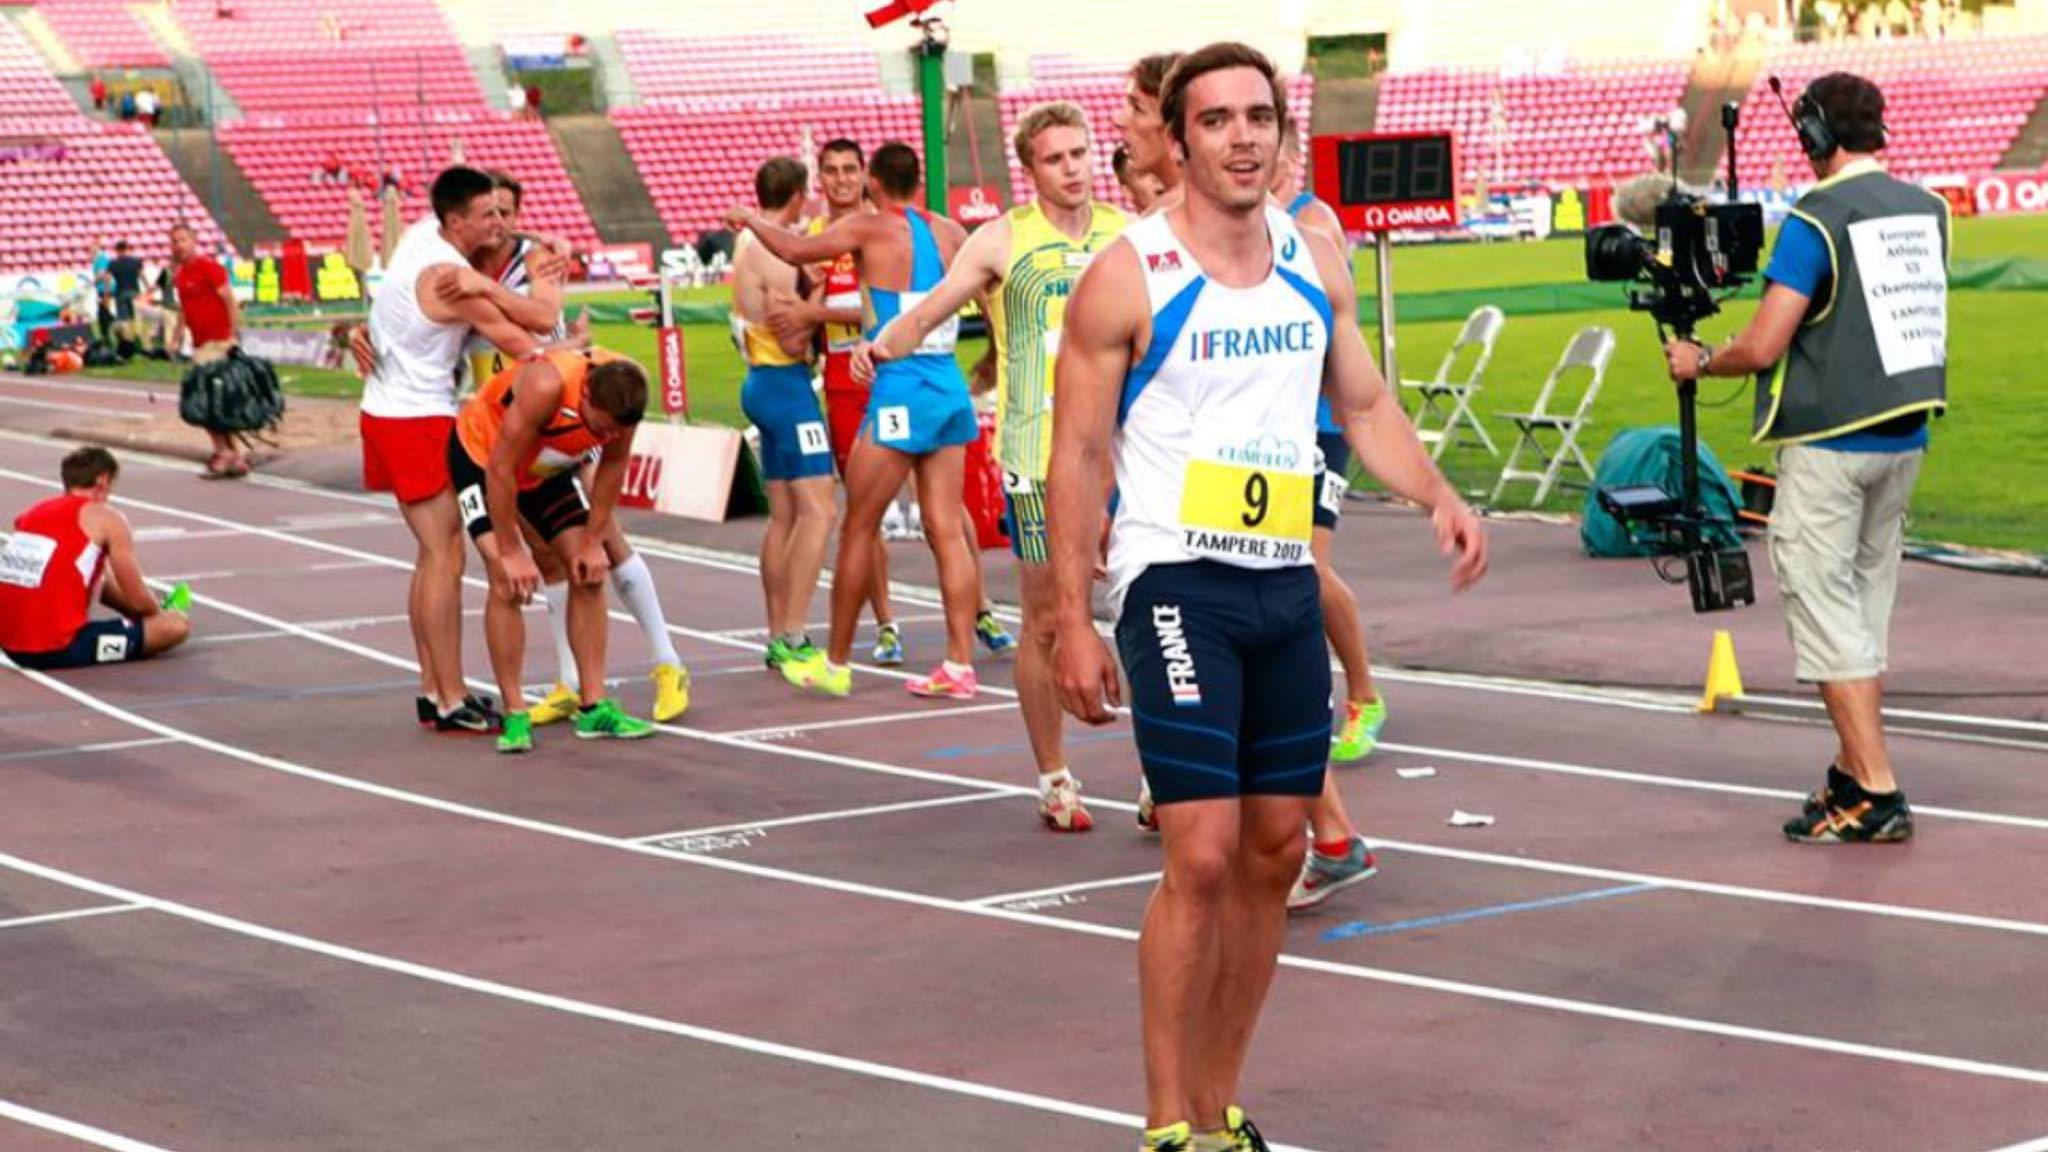 U23 European Championship in Tampere (FIN) in 2013 - after 1500m